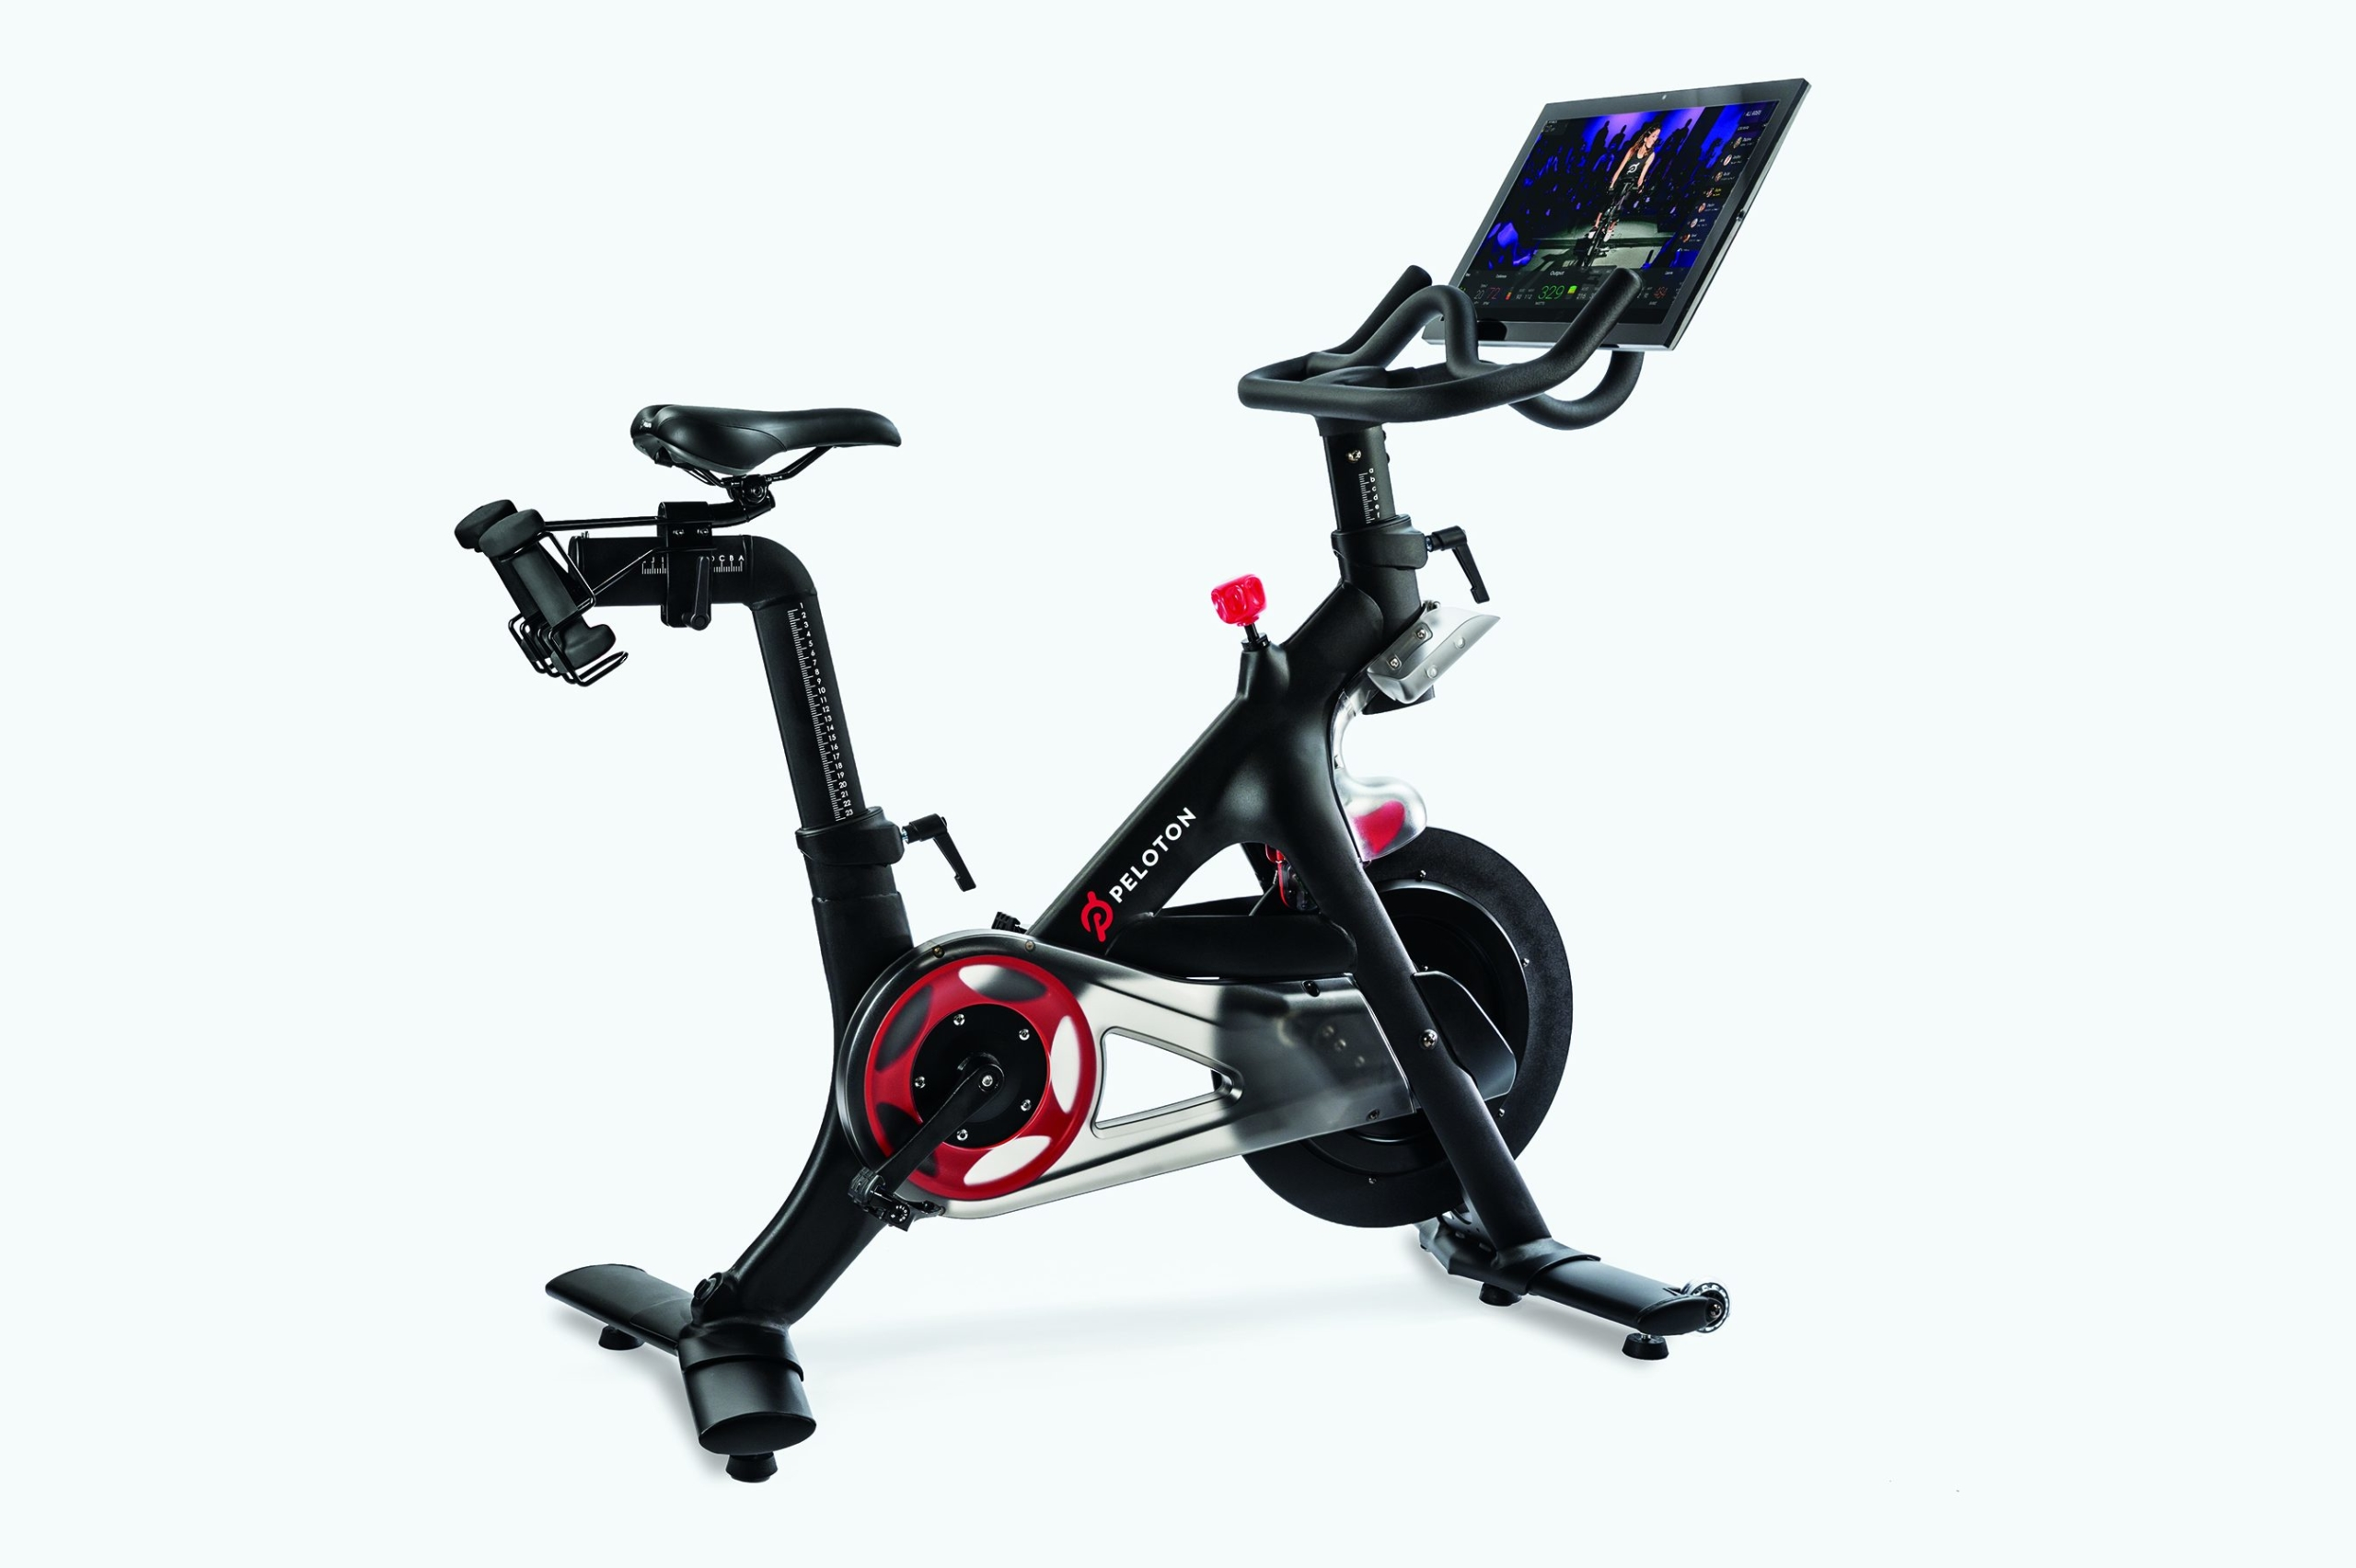 Peleton bikes available at the health club.